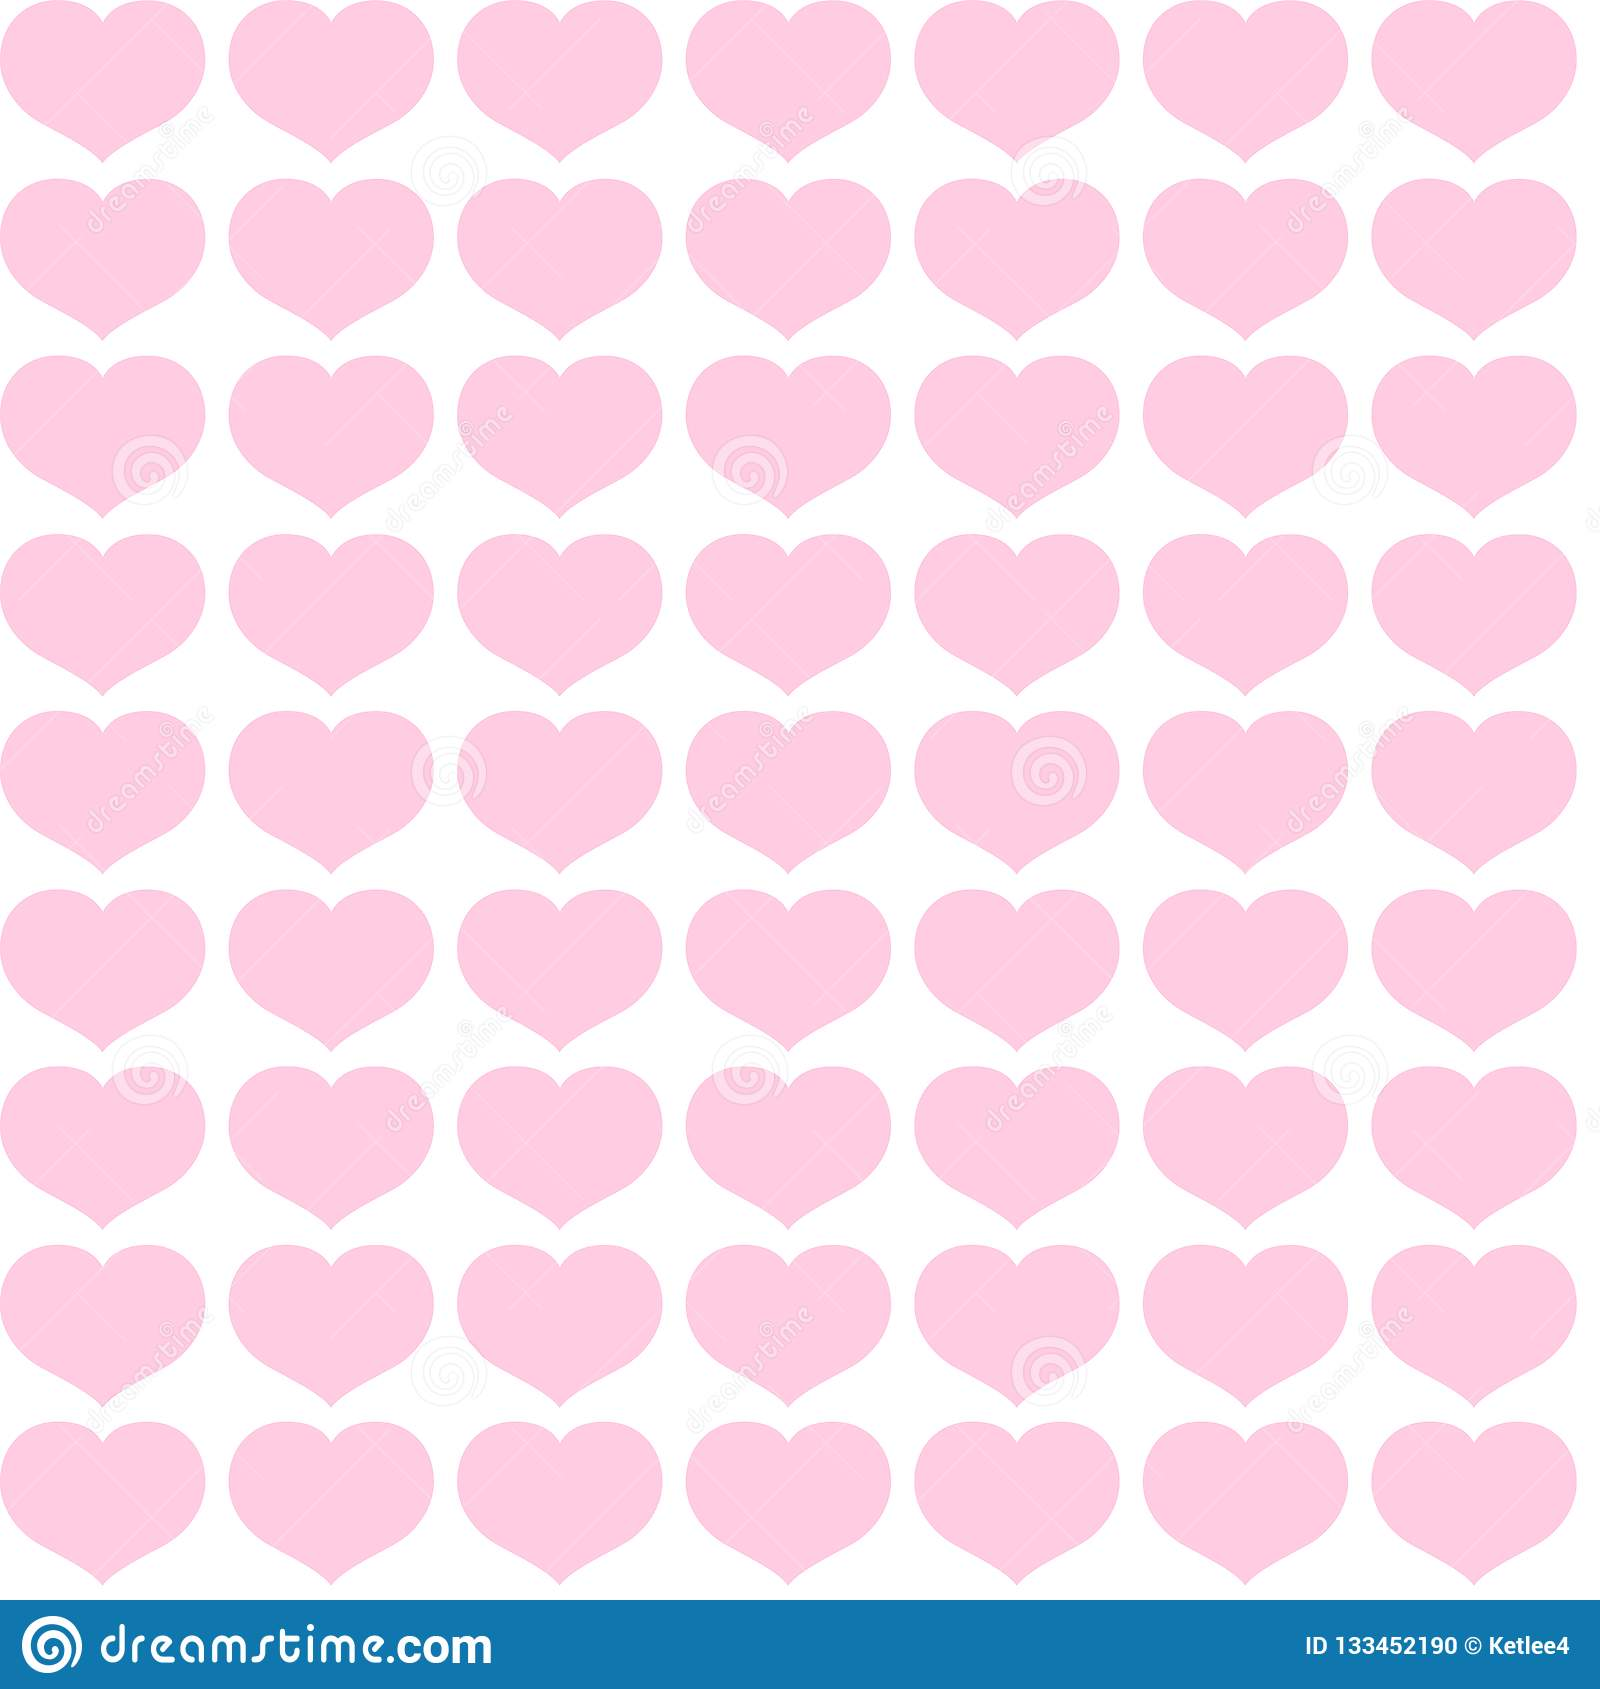 Seamless pattern from pink hearts on a white background Decorative ornament of hearts for design of templates greeting cards